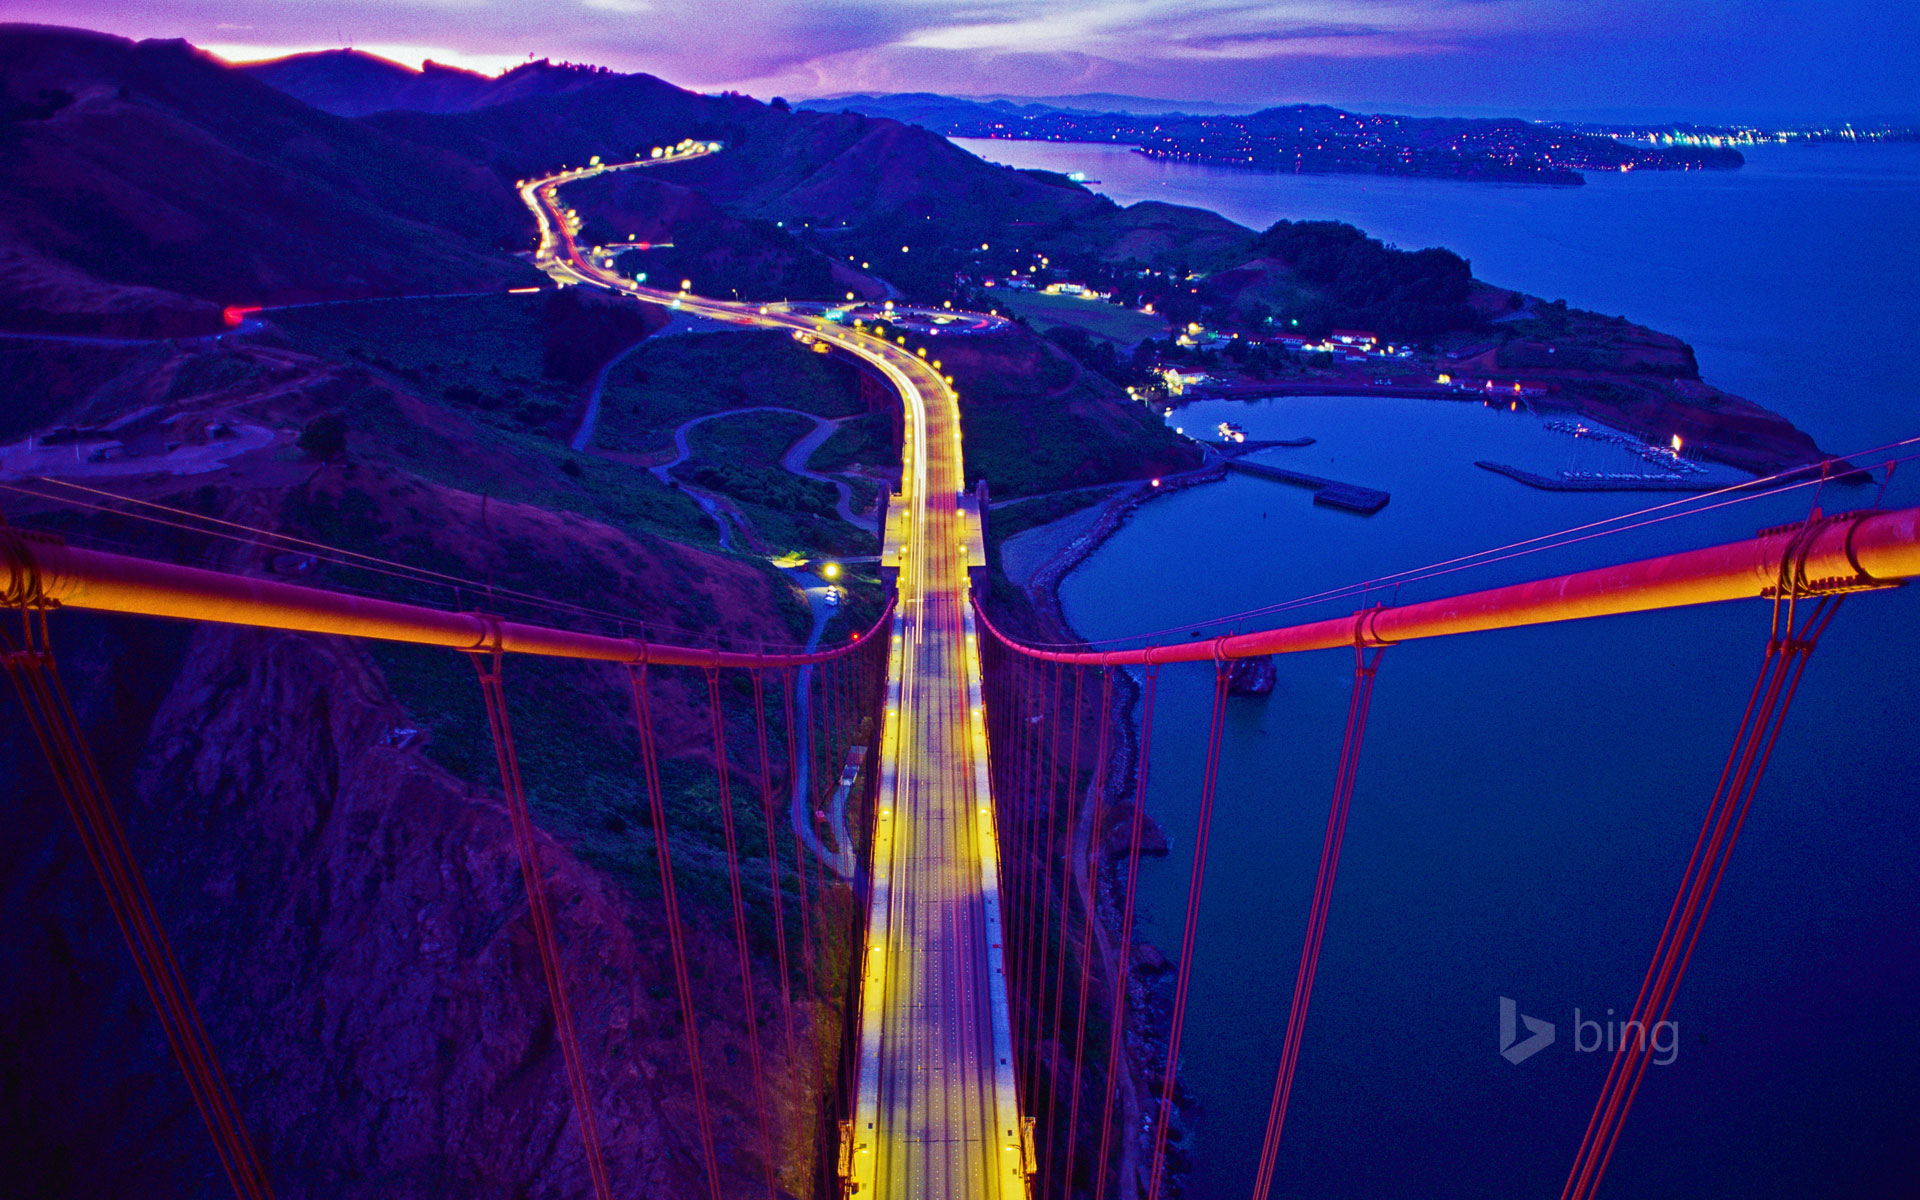 Golden Gate Bridge connecting to Marin County, California